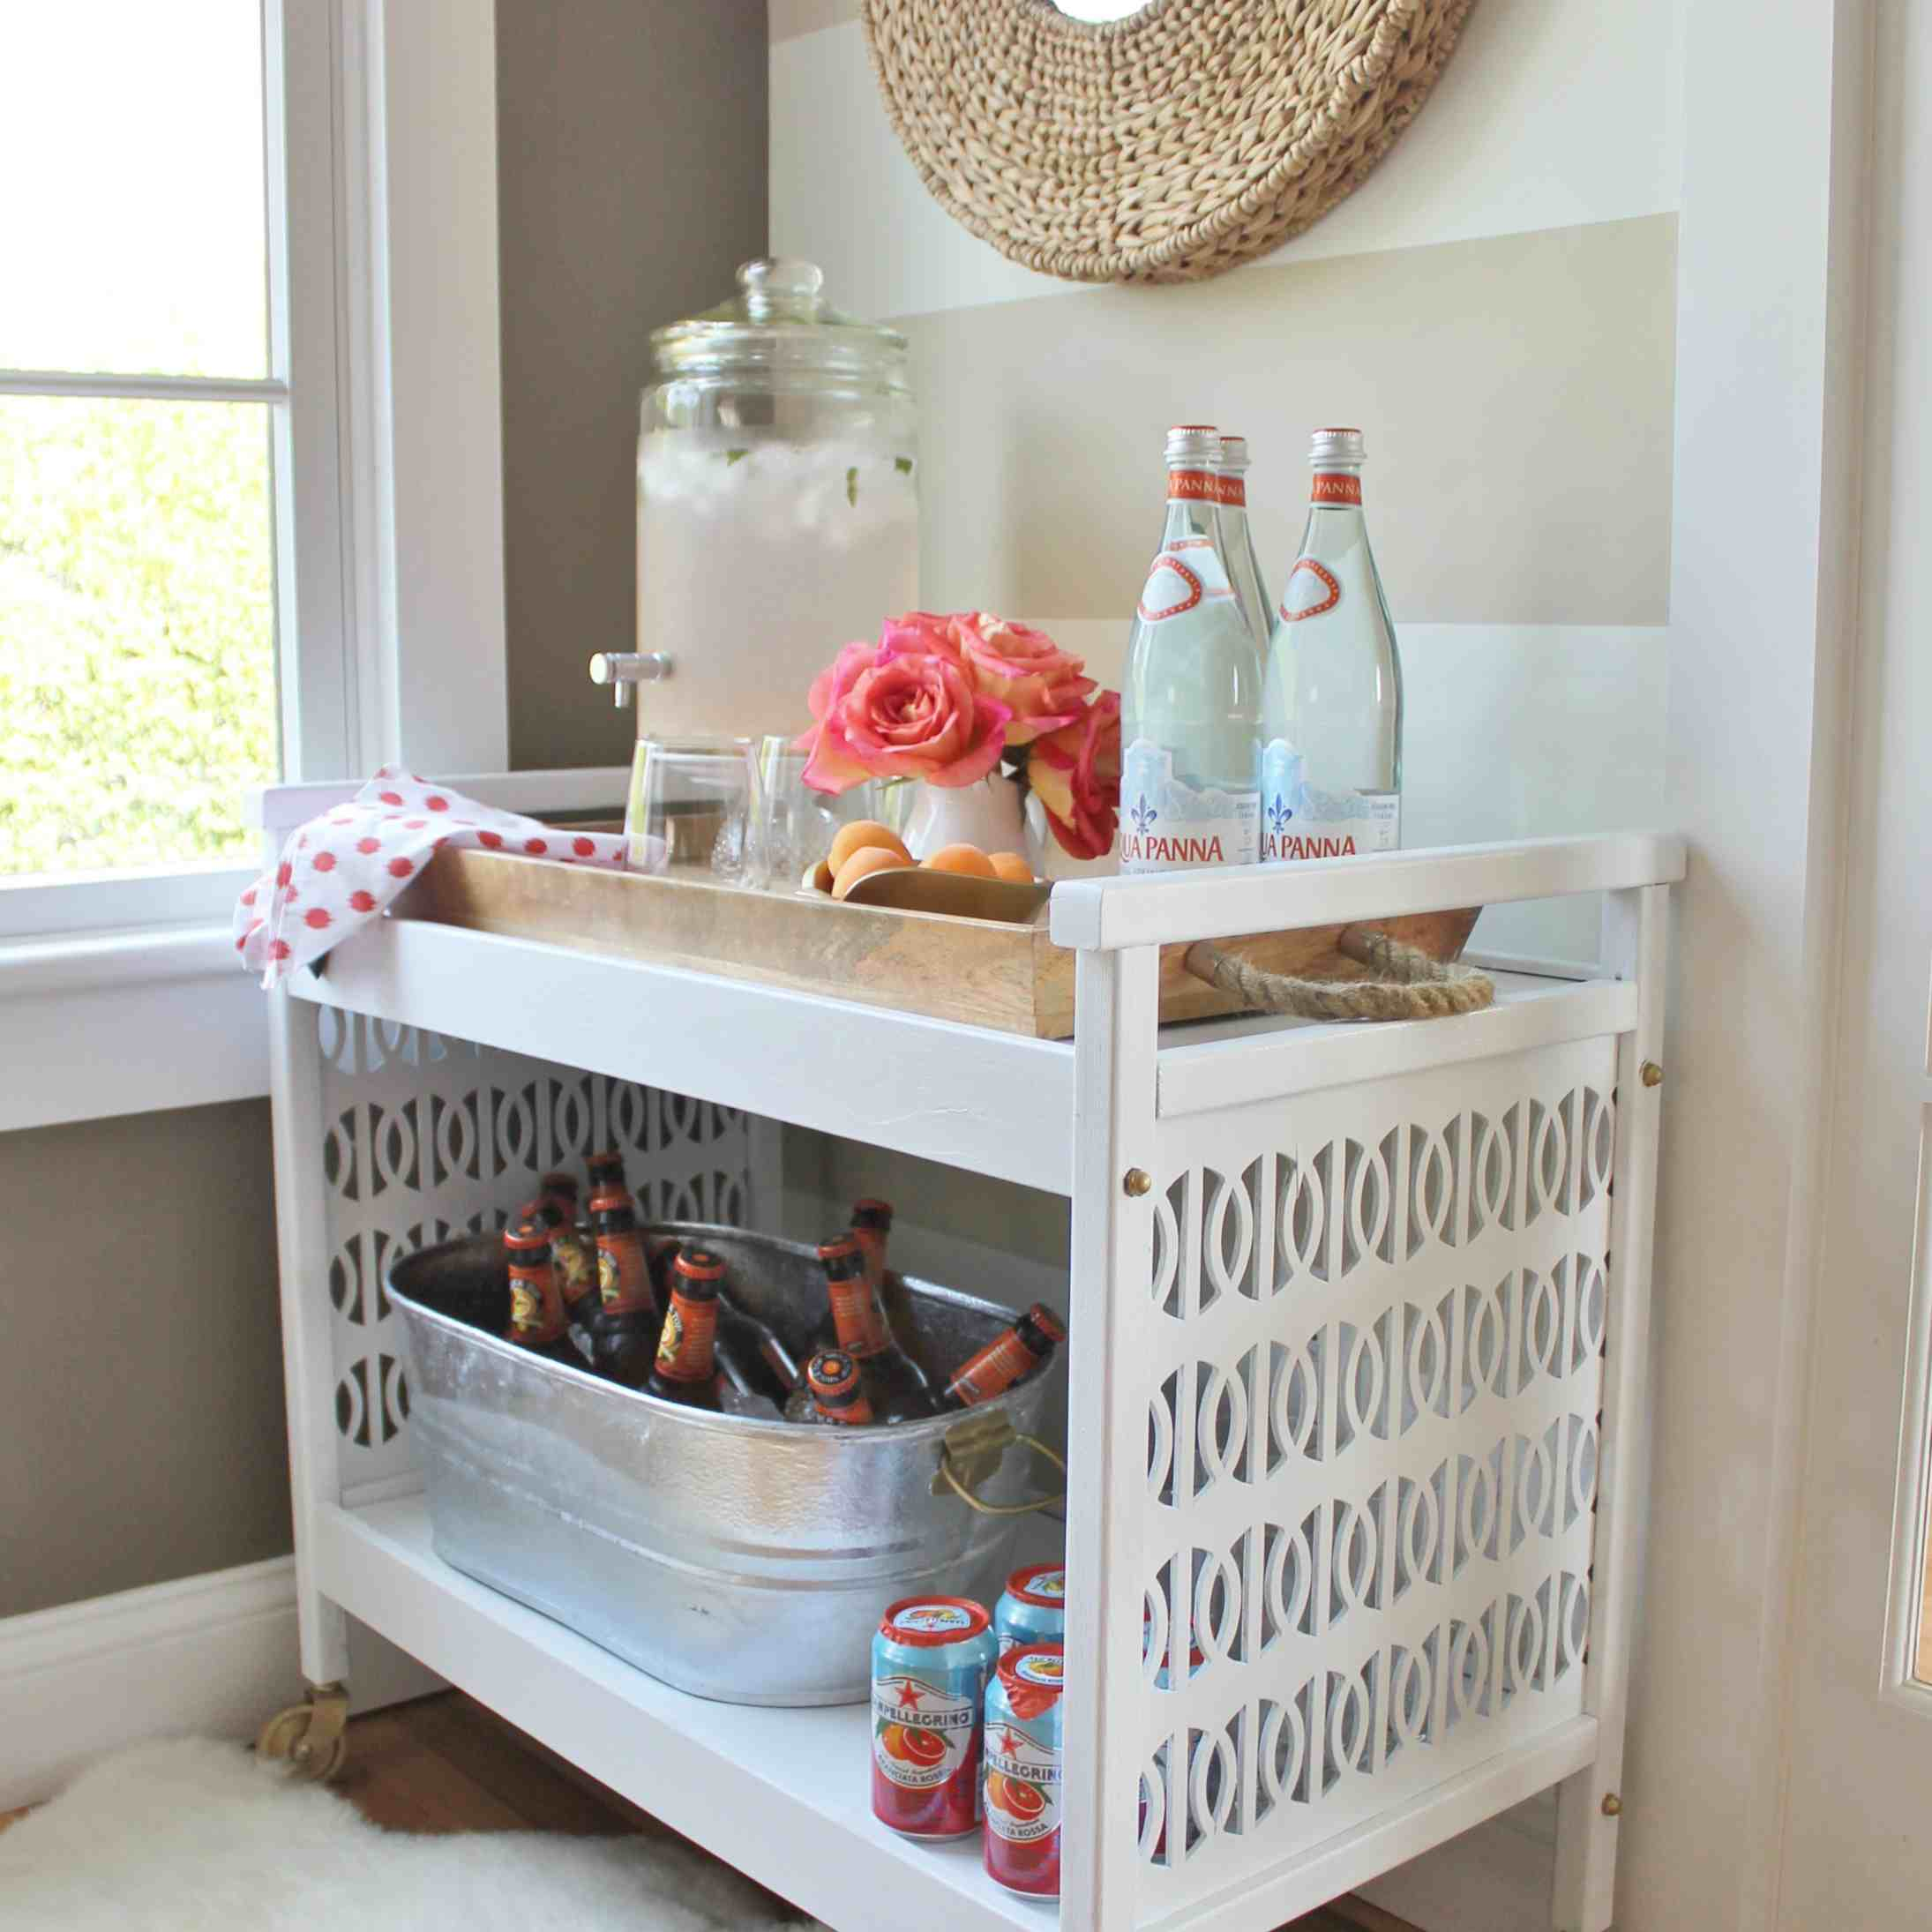 Rustic-Glam-Mid-Century-Modern-TV-Cart-Makeover-Spray-Painted-Hardware-Casters-Gold.jpg